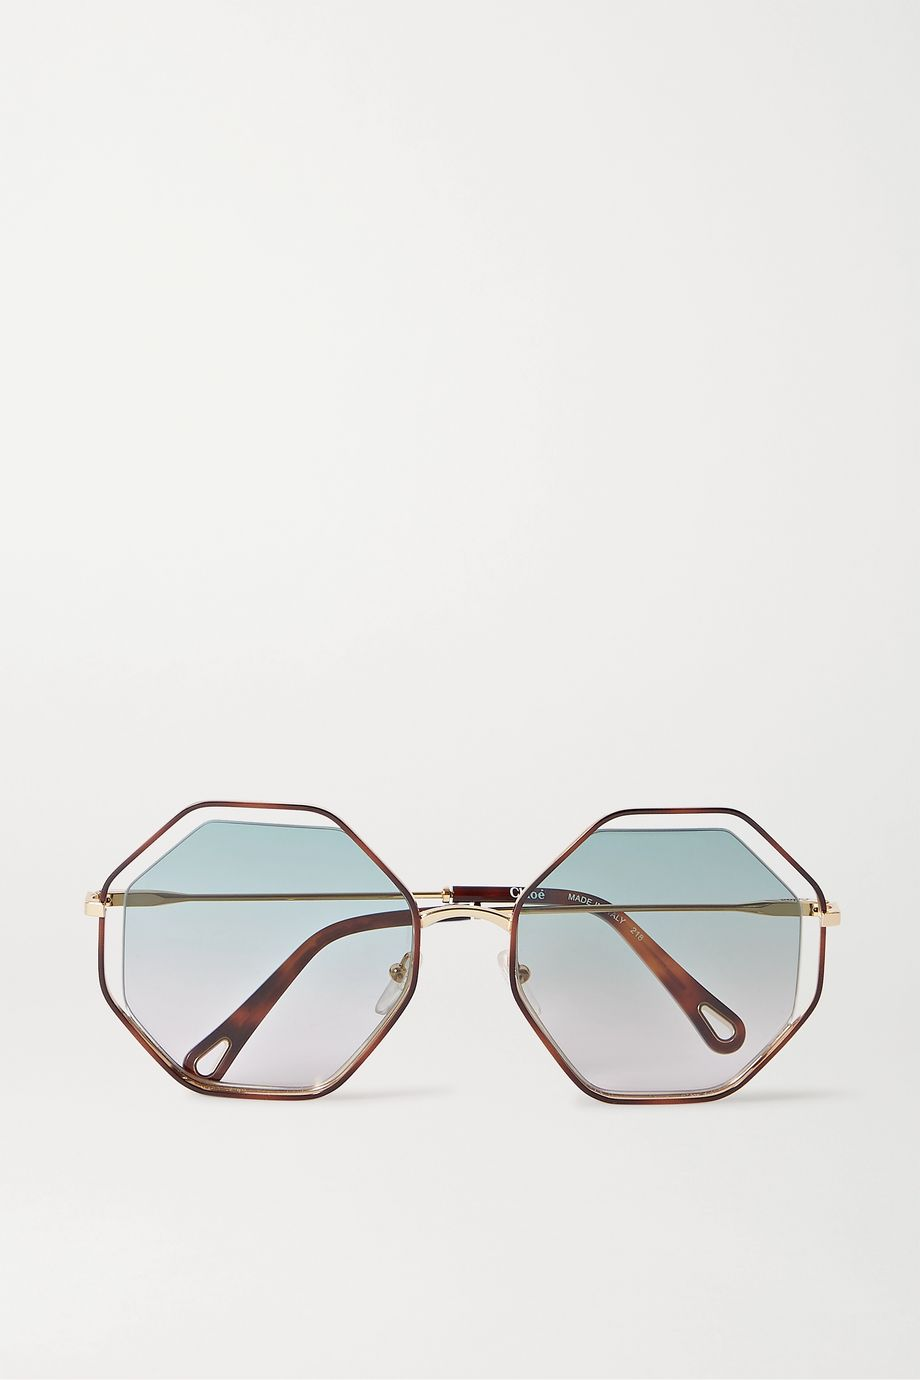 Chloé Poppy octagon-frame tortoiseshell acetate and gold-tone sunglasses